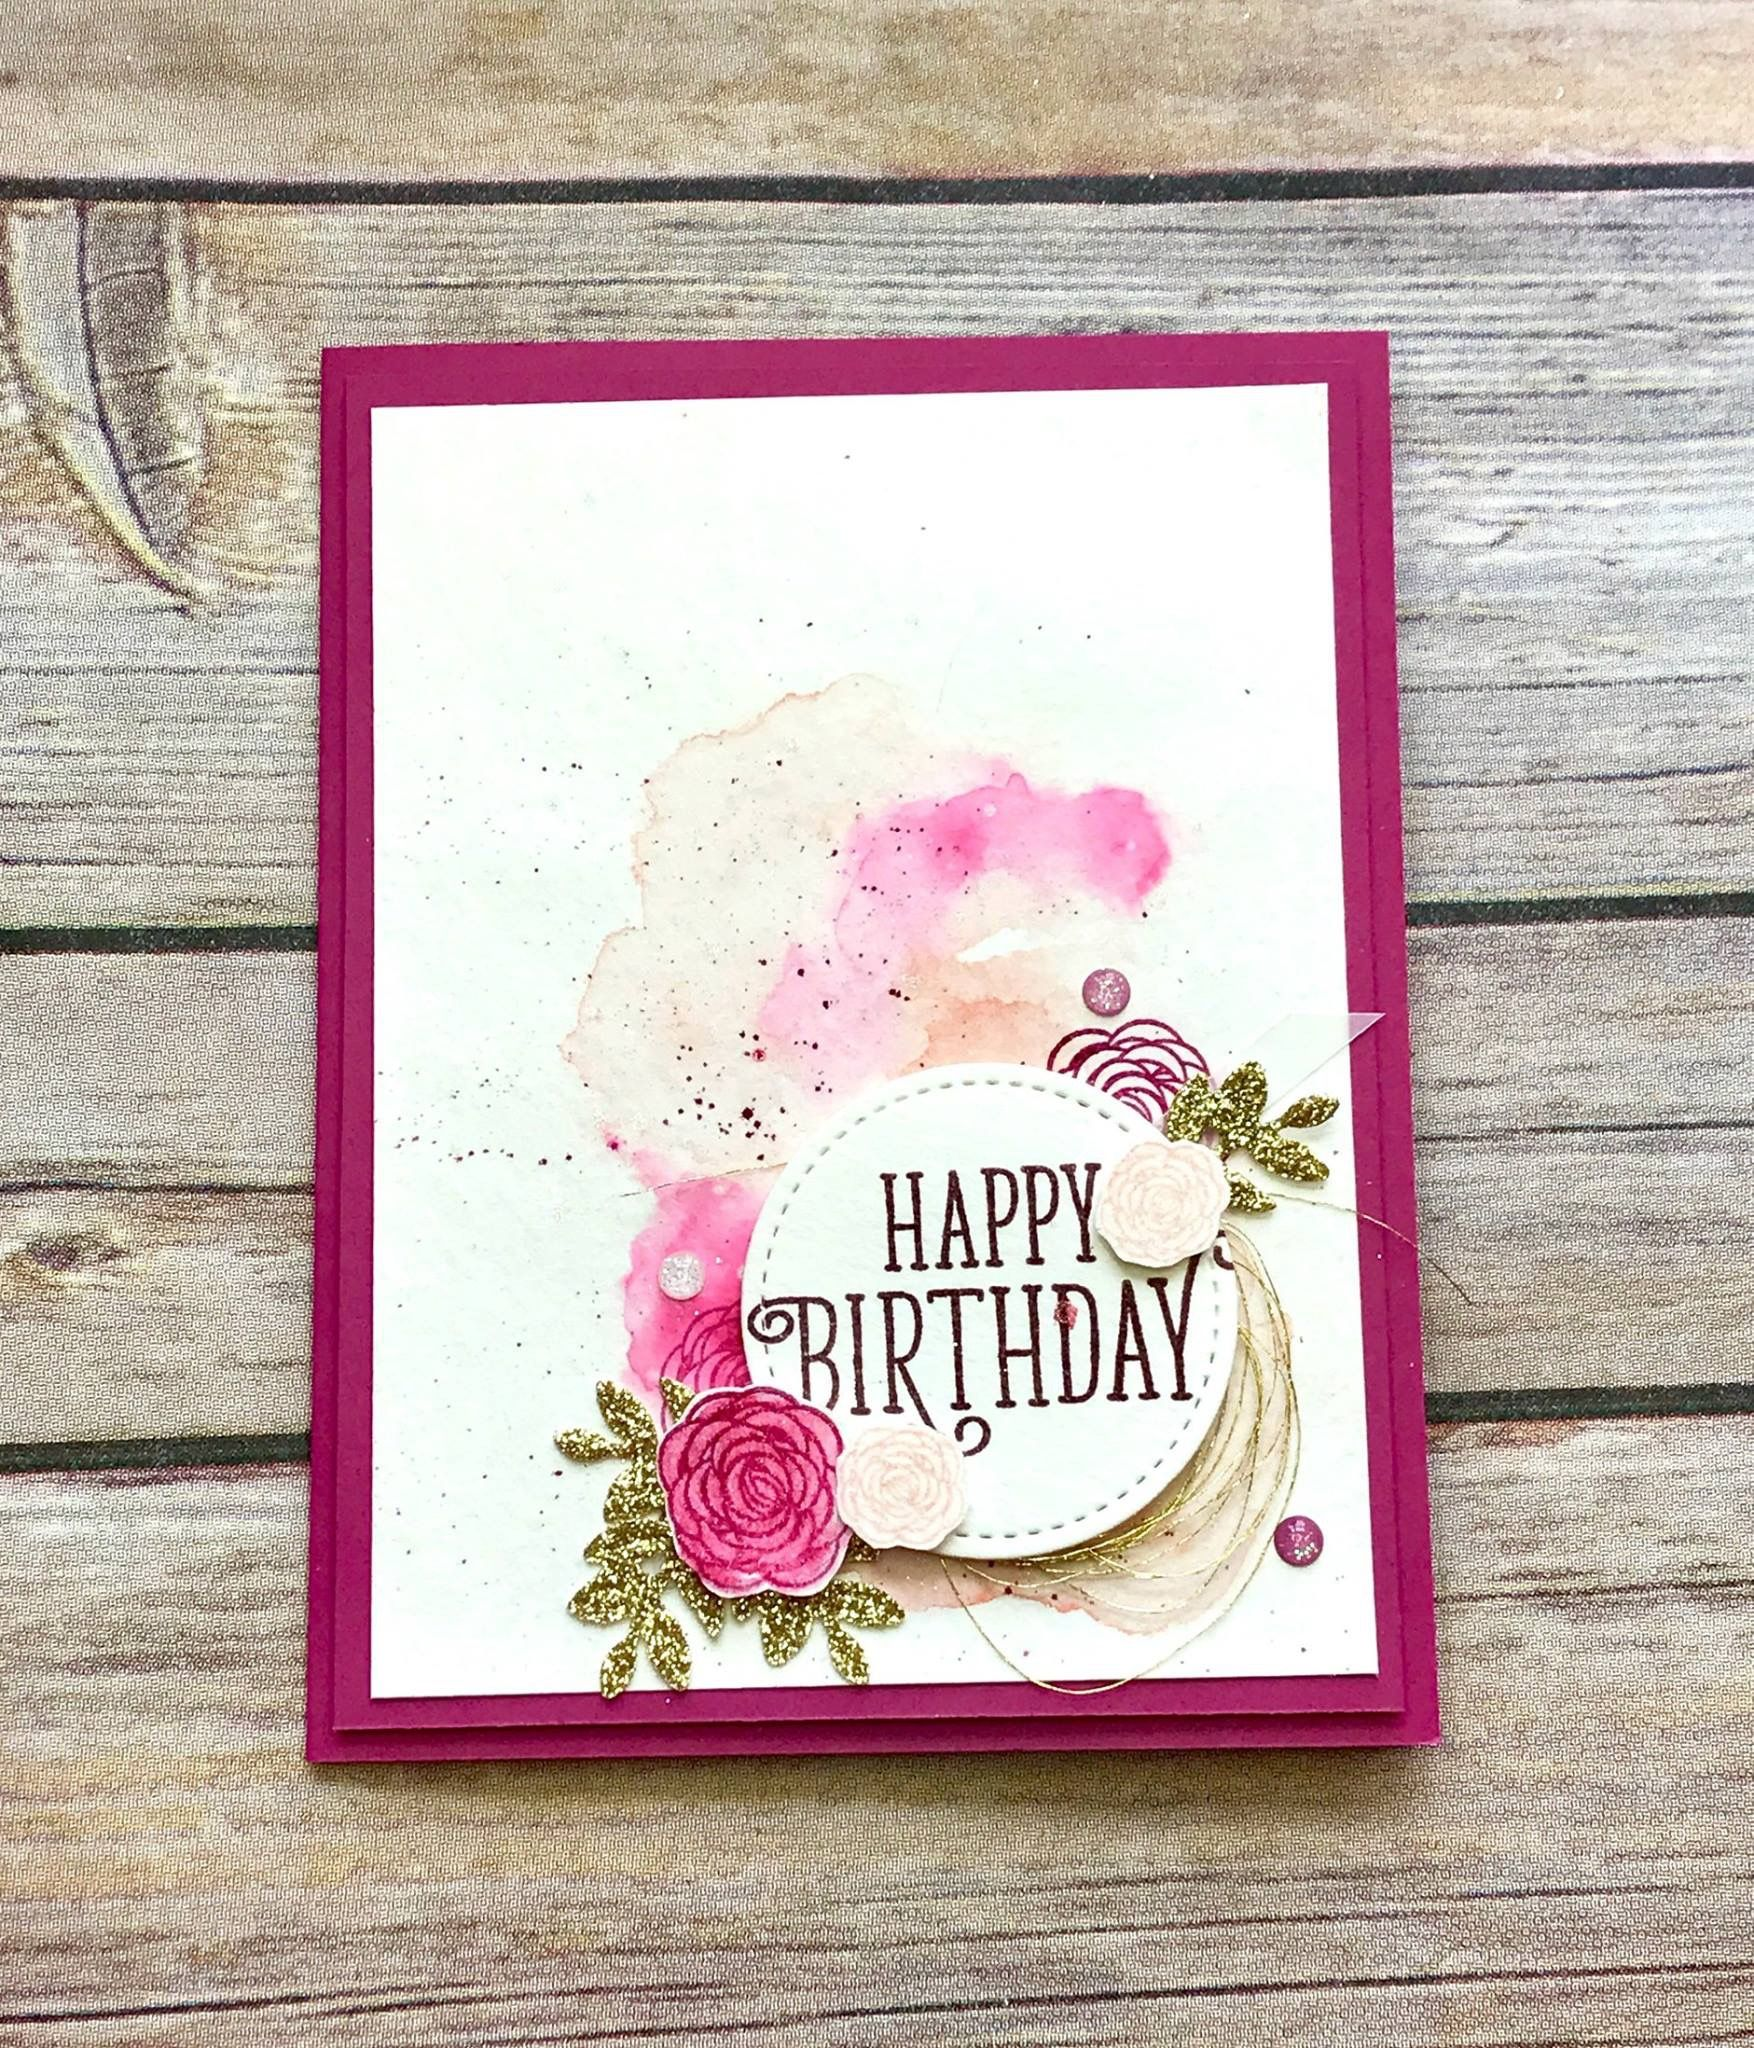 Pin by tricia bellingar on happy birthday gorgeous pinterest the happy birthday gorgeous stamp set is the perfect way to send your birthday wishes from gorgeous cards to beautiful gift packaging this set can do it kristyandbryce Gallery